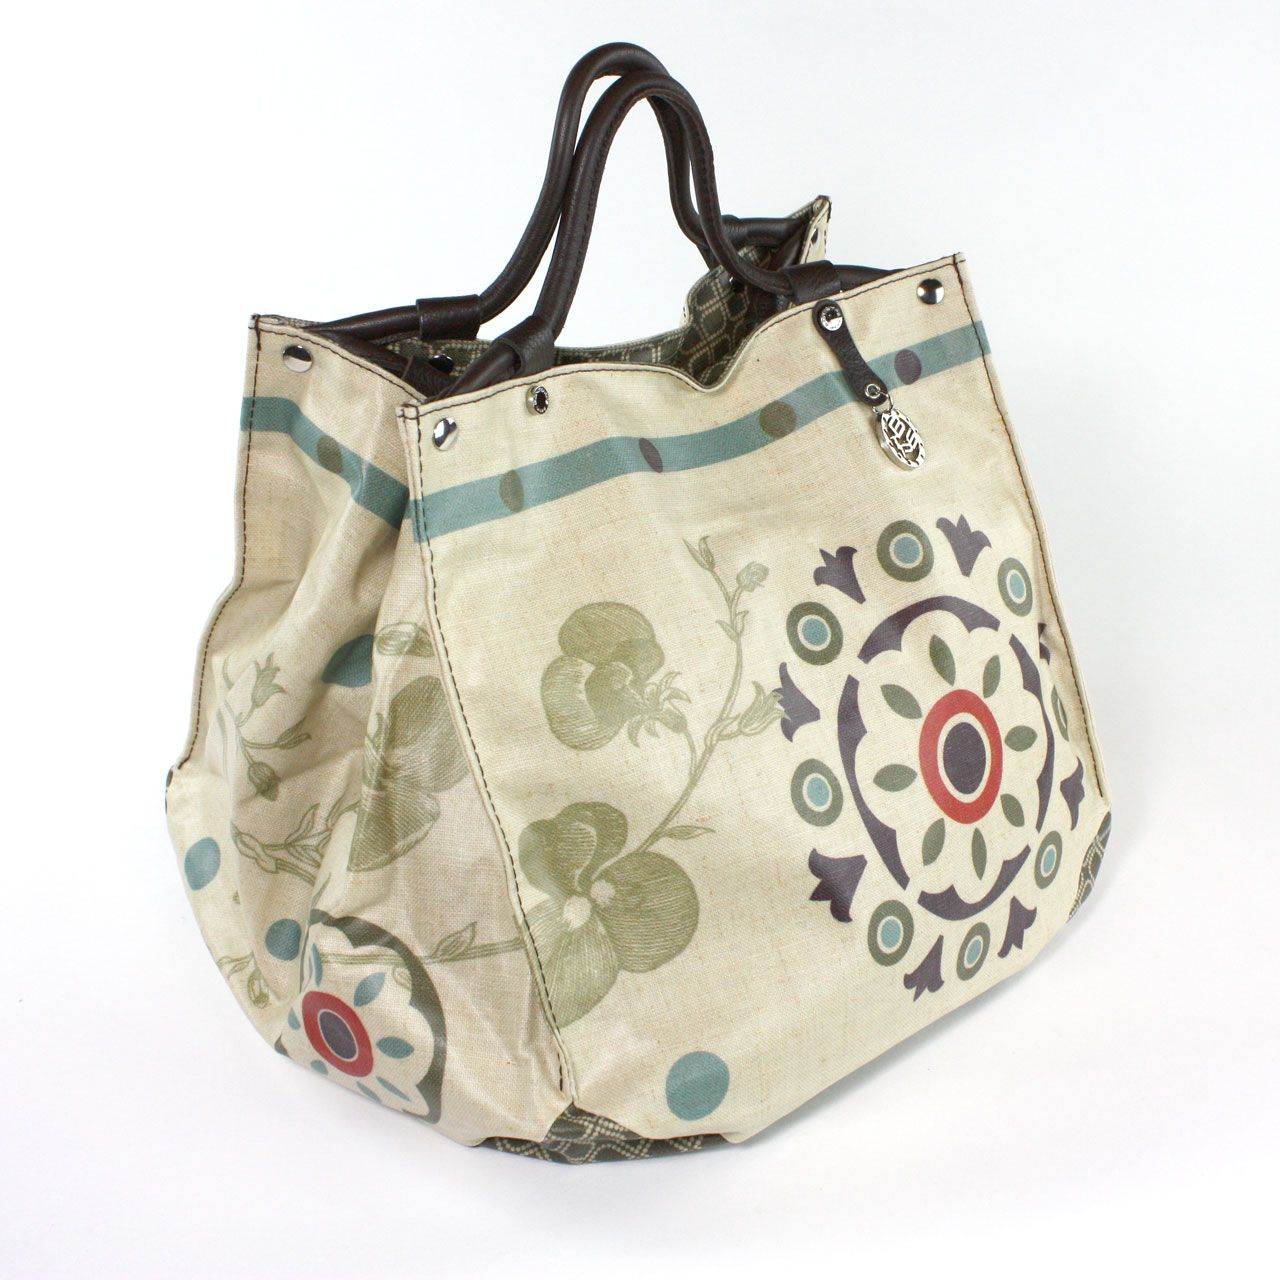 Circus Cube Tote By Bontemps France From The Juniper Hearth E Emporium Large Handbag With Retro Print Moss Green Purple And Red Accents 195